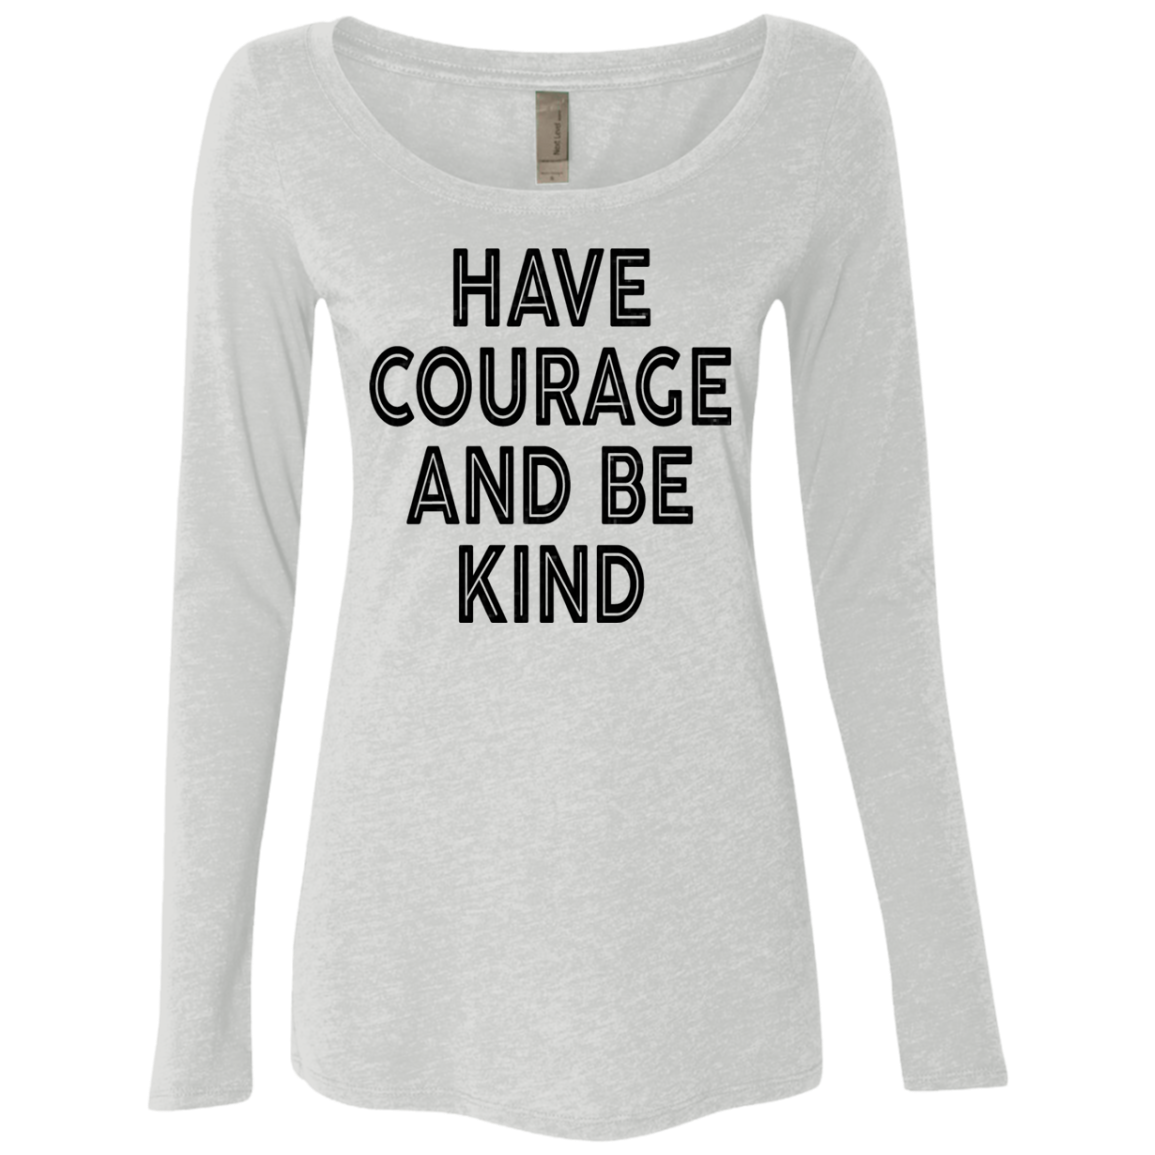 Have Courage And Be Kind Women's Long Sleeve Tee